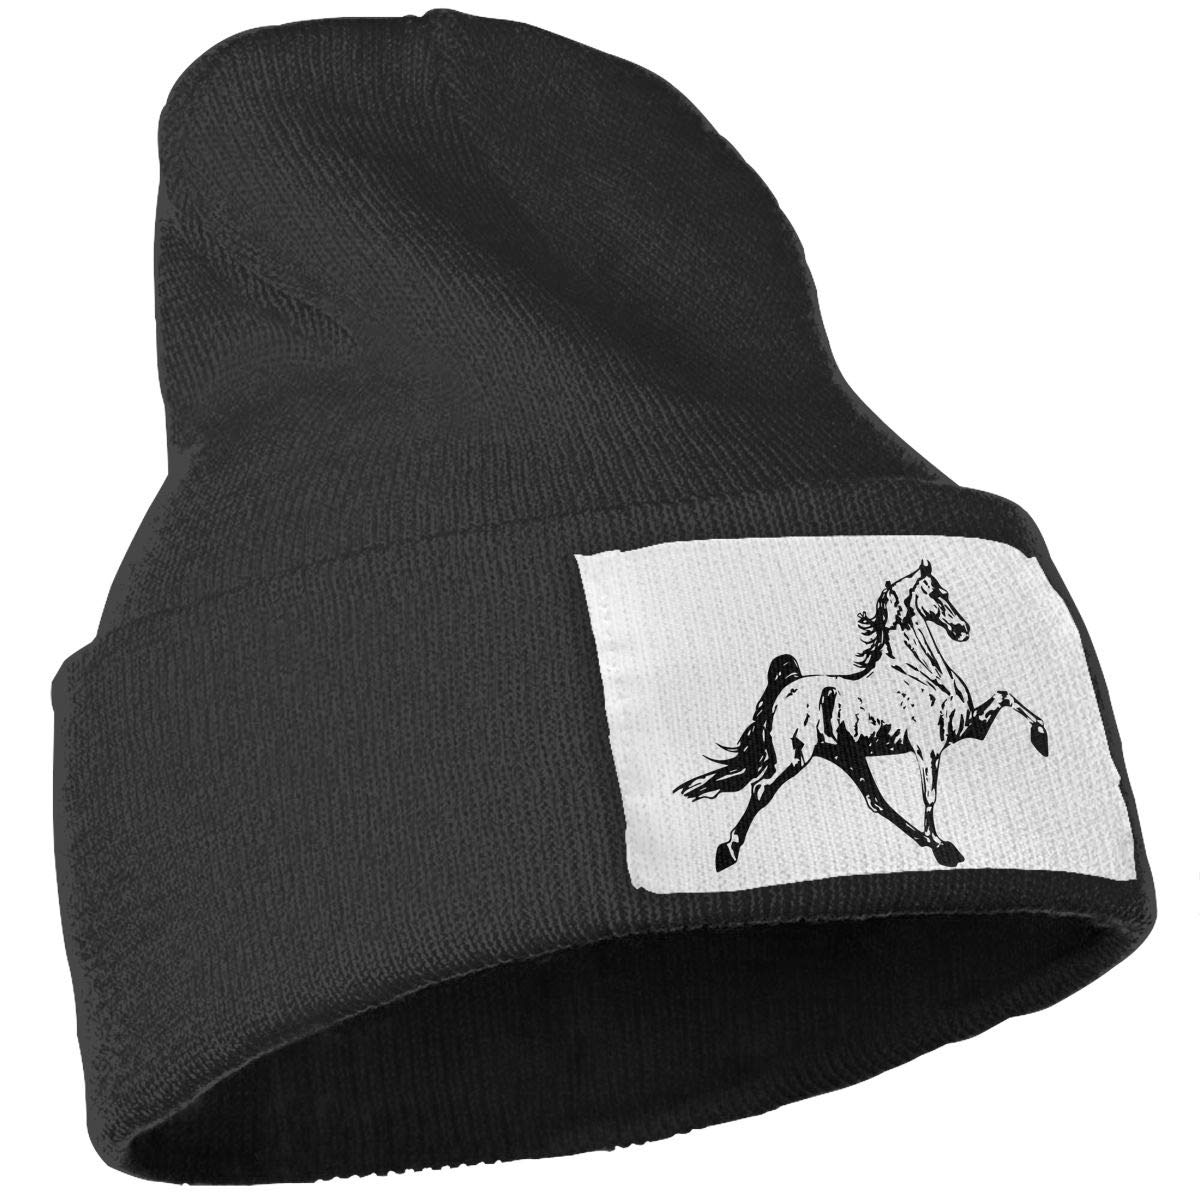 WHOO93@Y Mens Womens 100/% Acrylic Knit Hat Cap Tennessee Walking Horse Thick Ski Cap